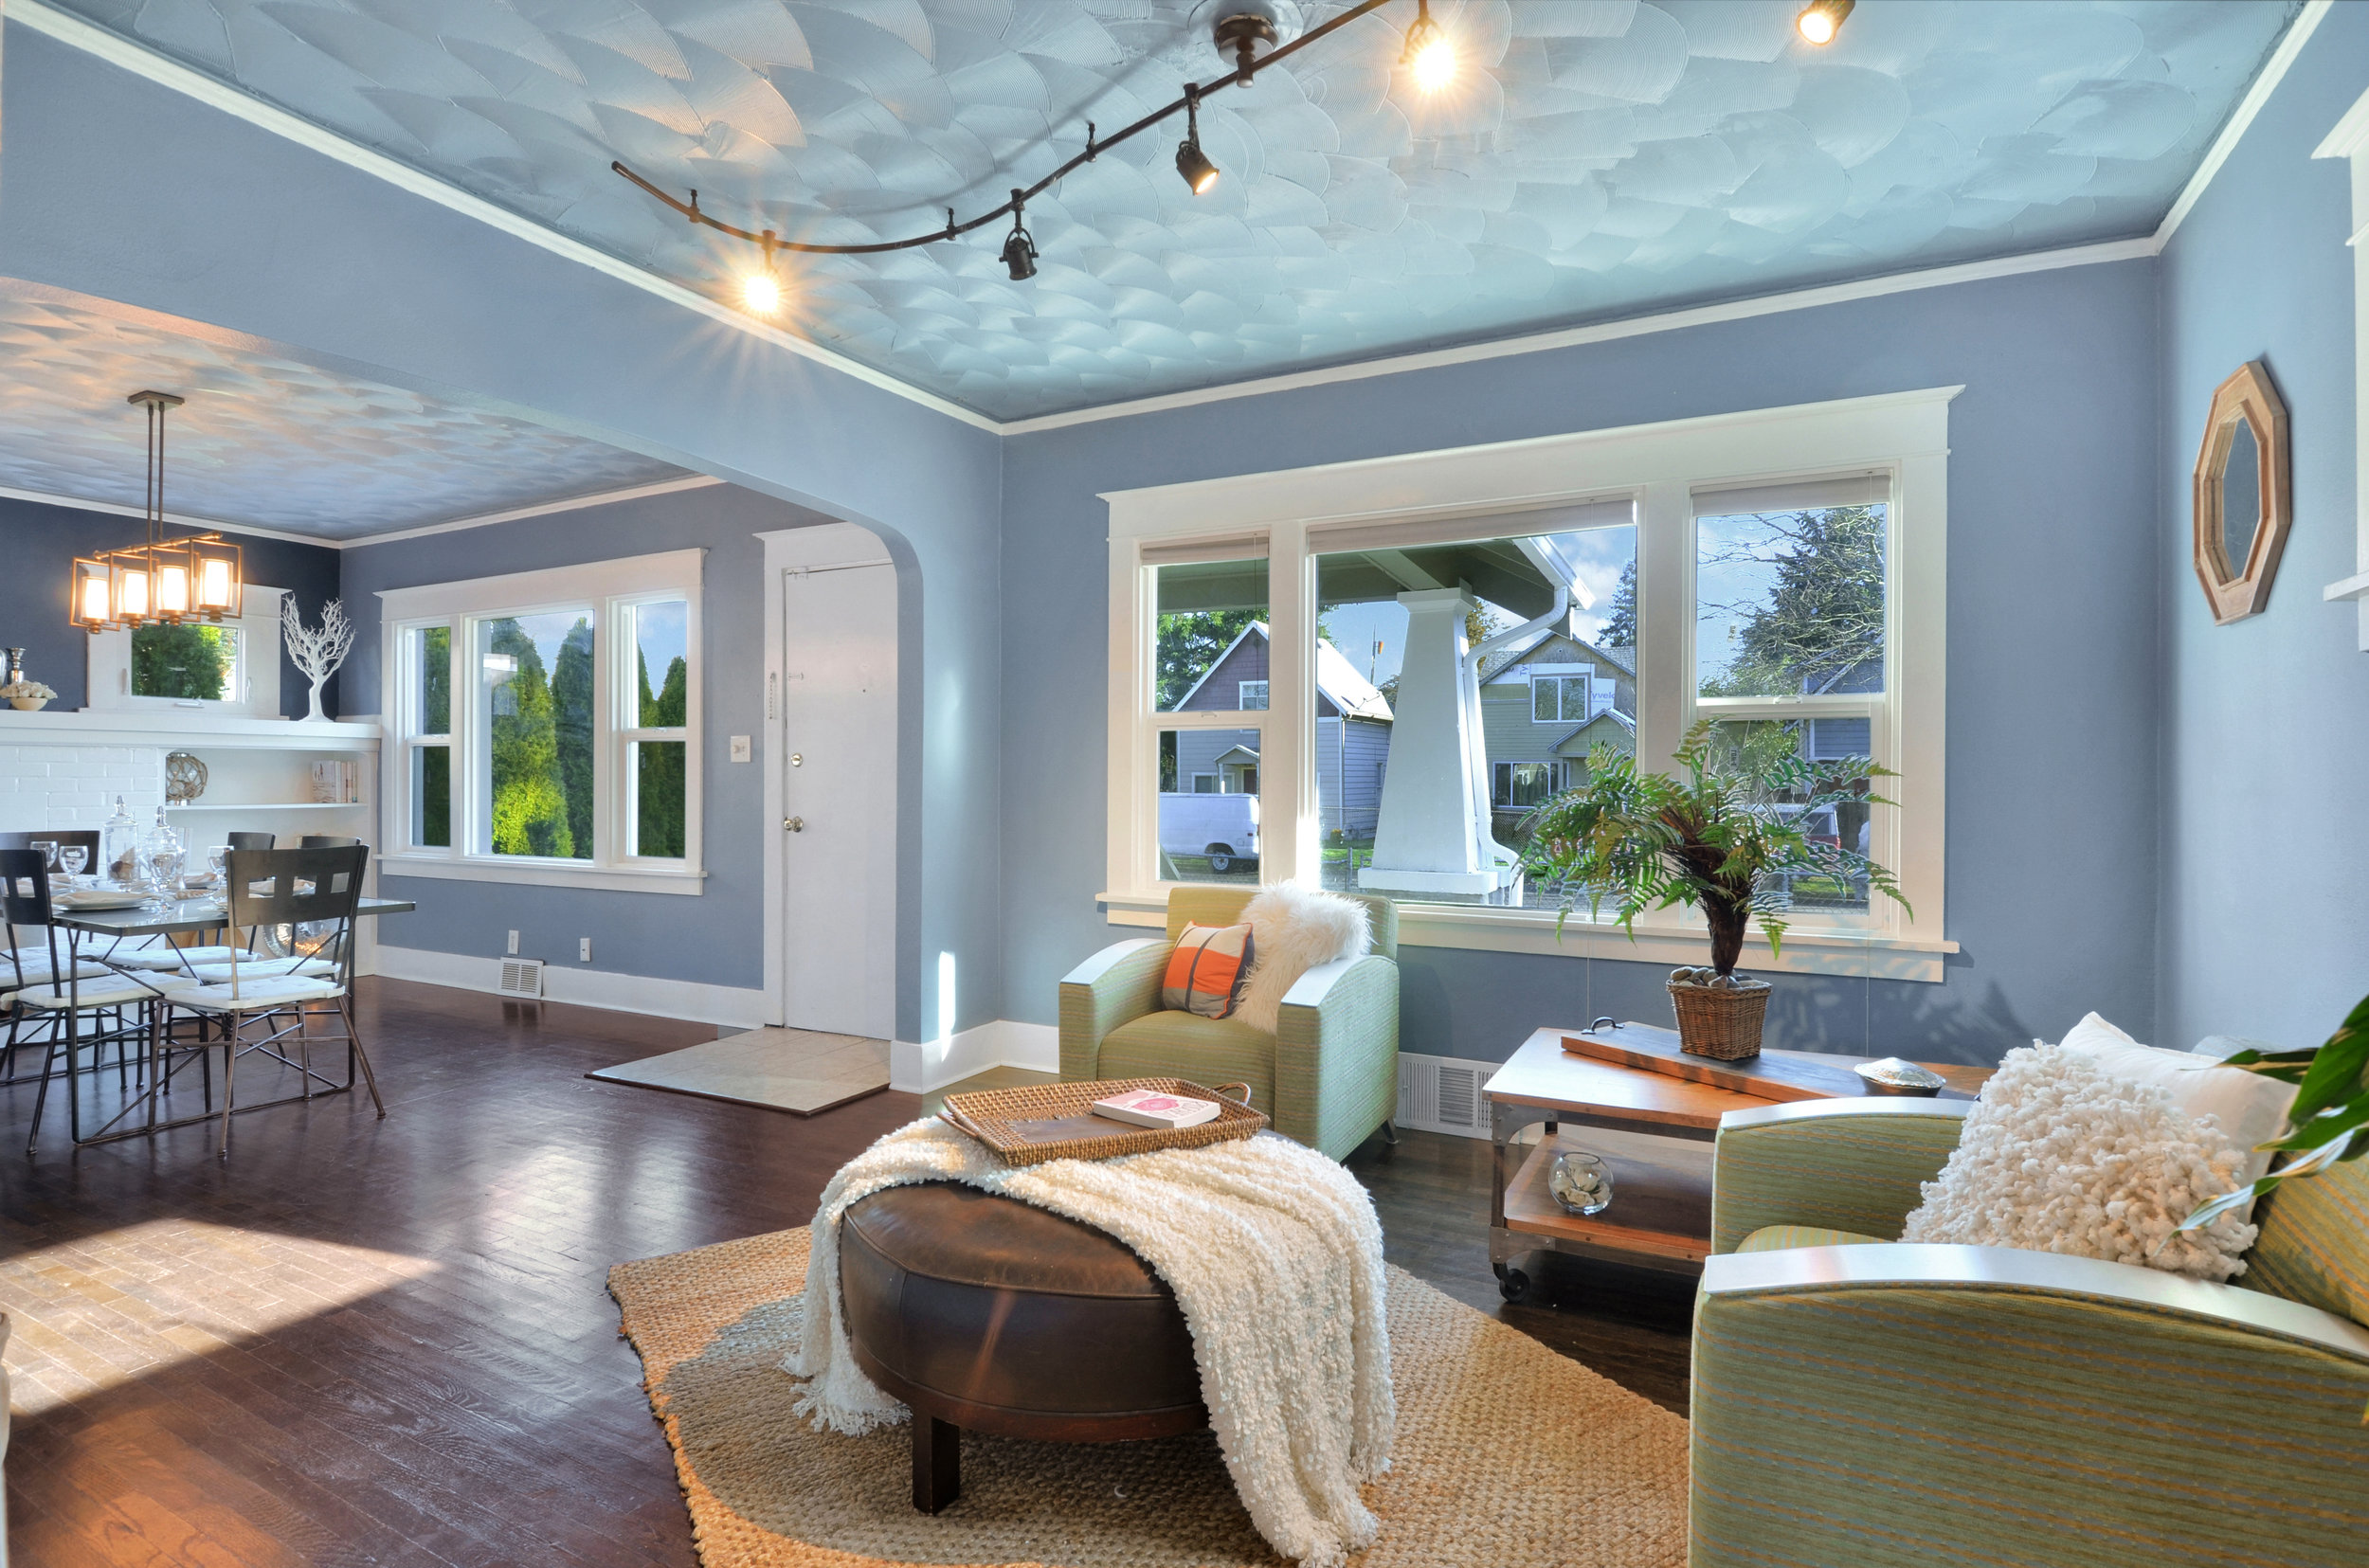 Ornamental comb textured ceilings, fresh paint, custom stained hardwood floors, and big front windows create beautiful living and dining rooms. Note: these windows are just nice looking, they're also double-pane storm windows.